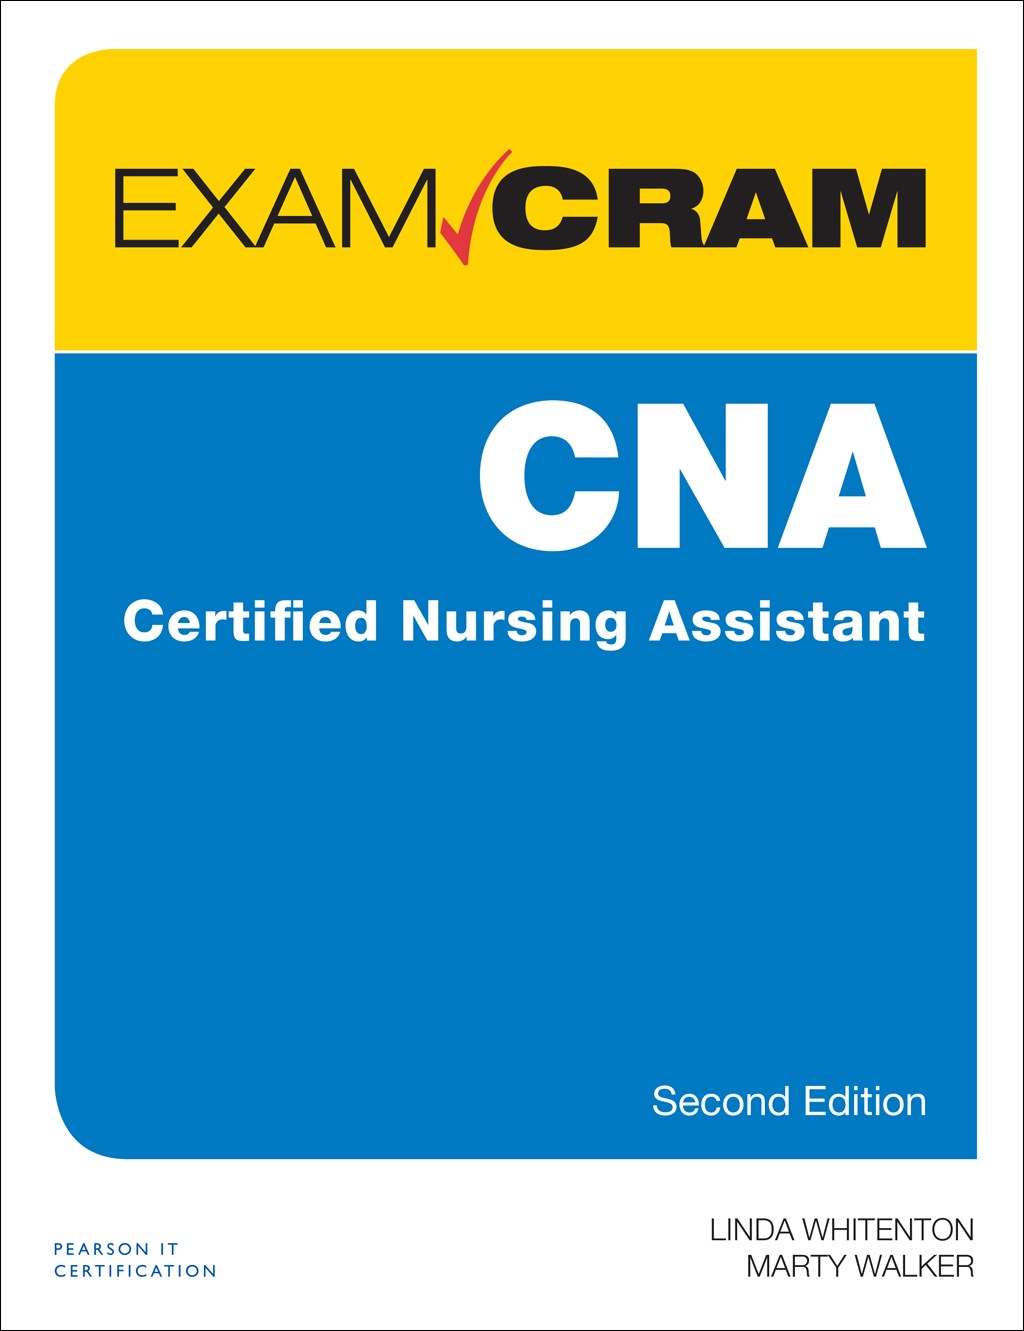 Cna certified nursing assistant exam cram 2nd edition pearson cna certified nursing assistant exam cram 2nd edition xflitez Choice Image